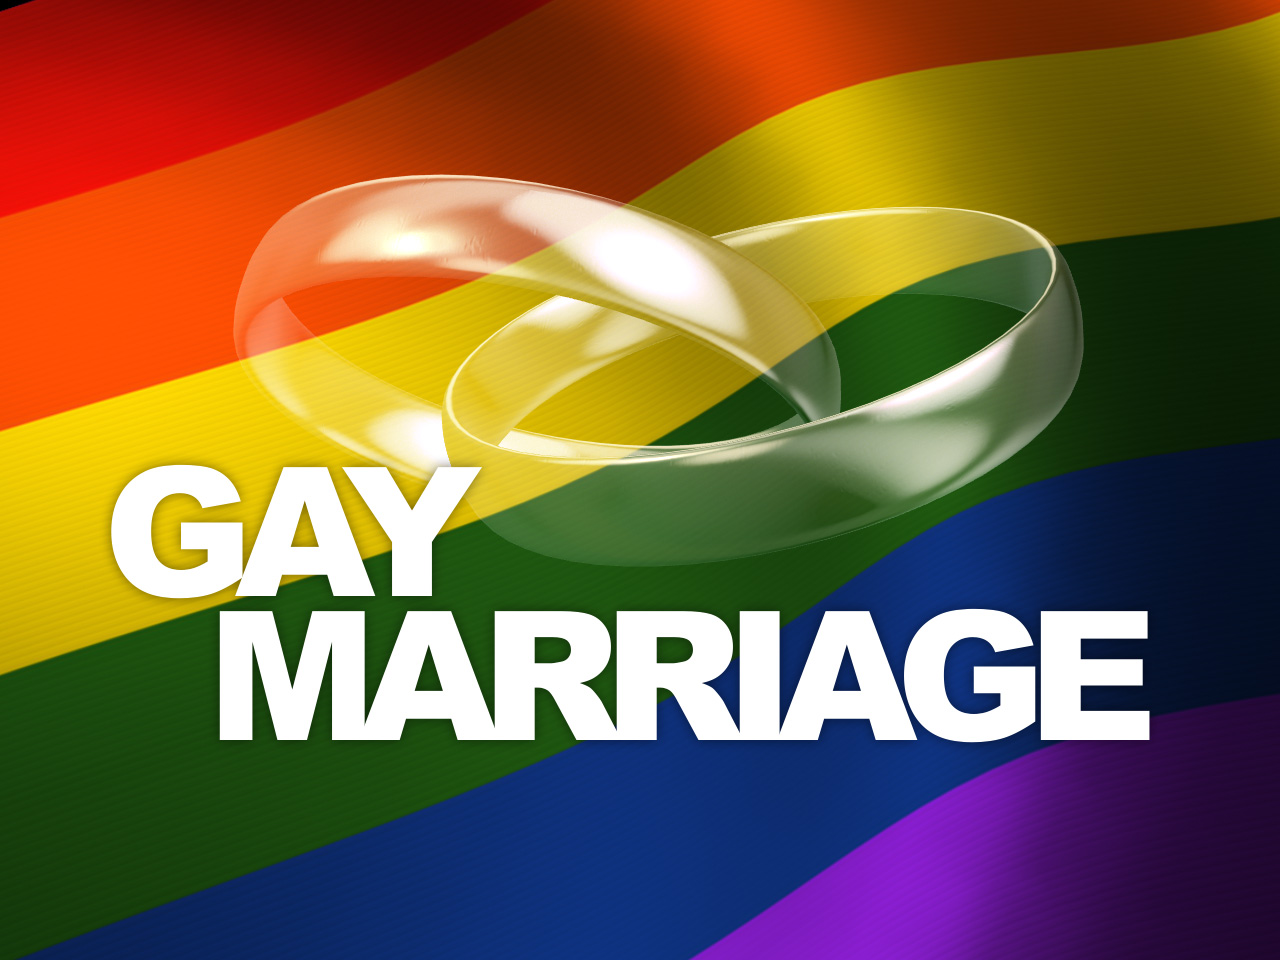 pro homosexual marriage Browse, search and watch gay marriage videos and more at abcnewscom.